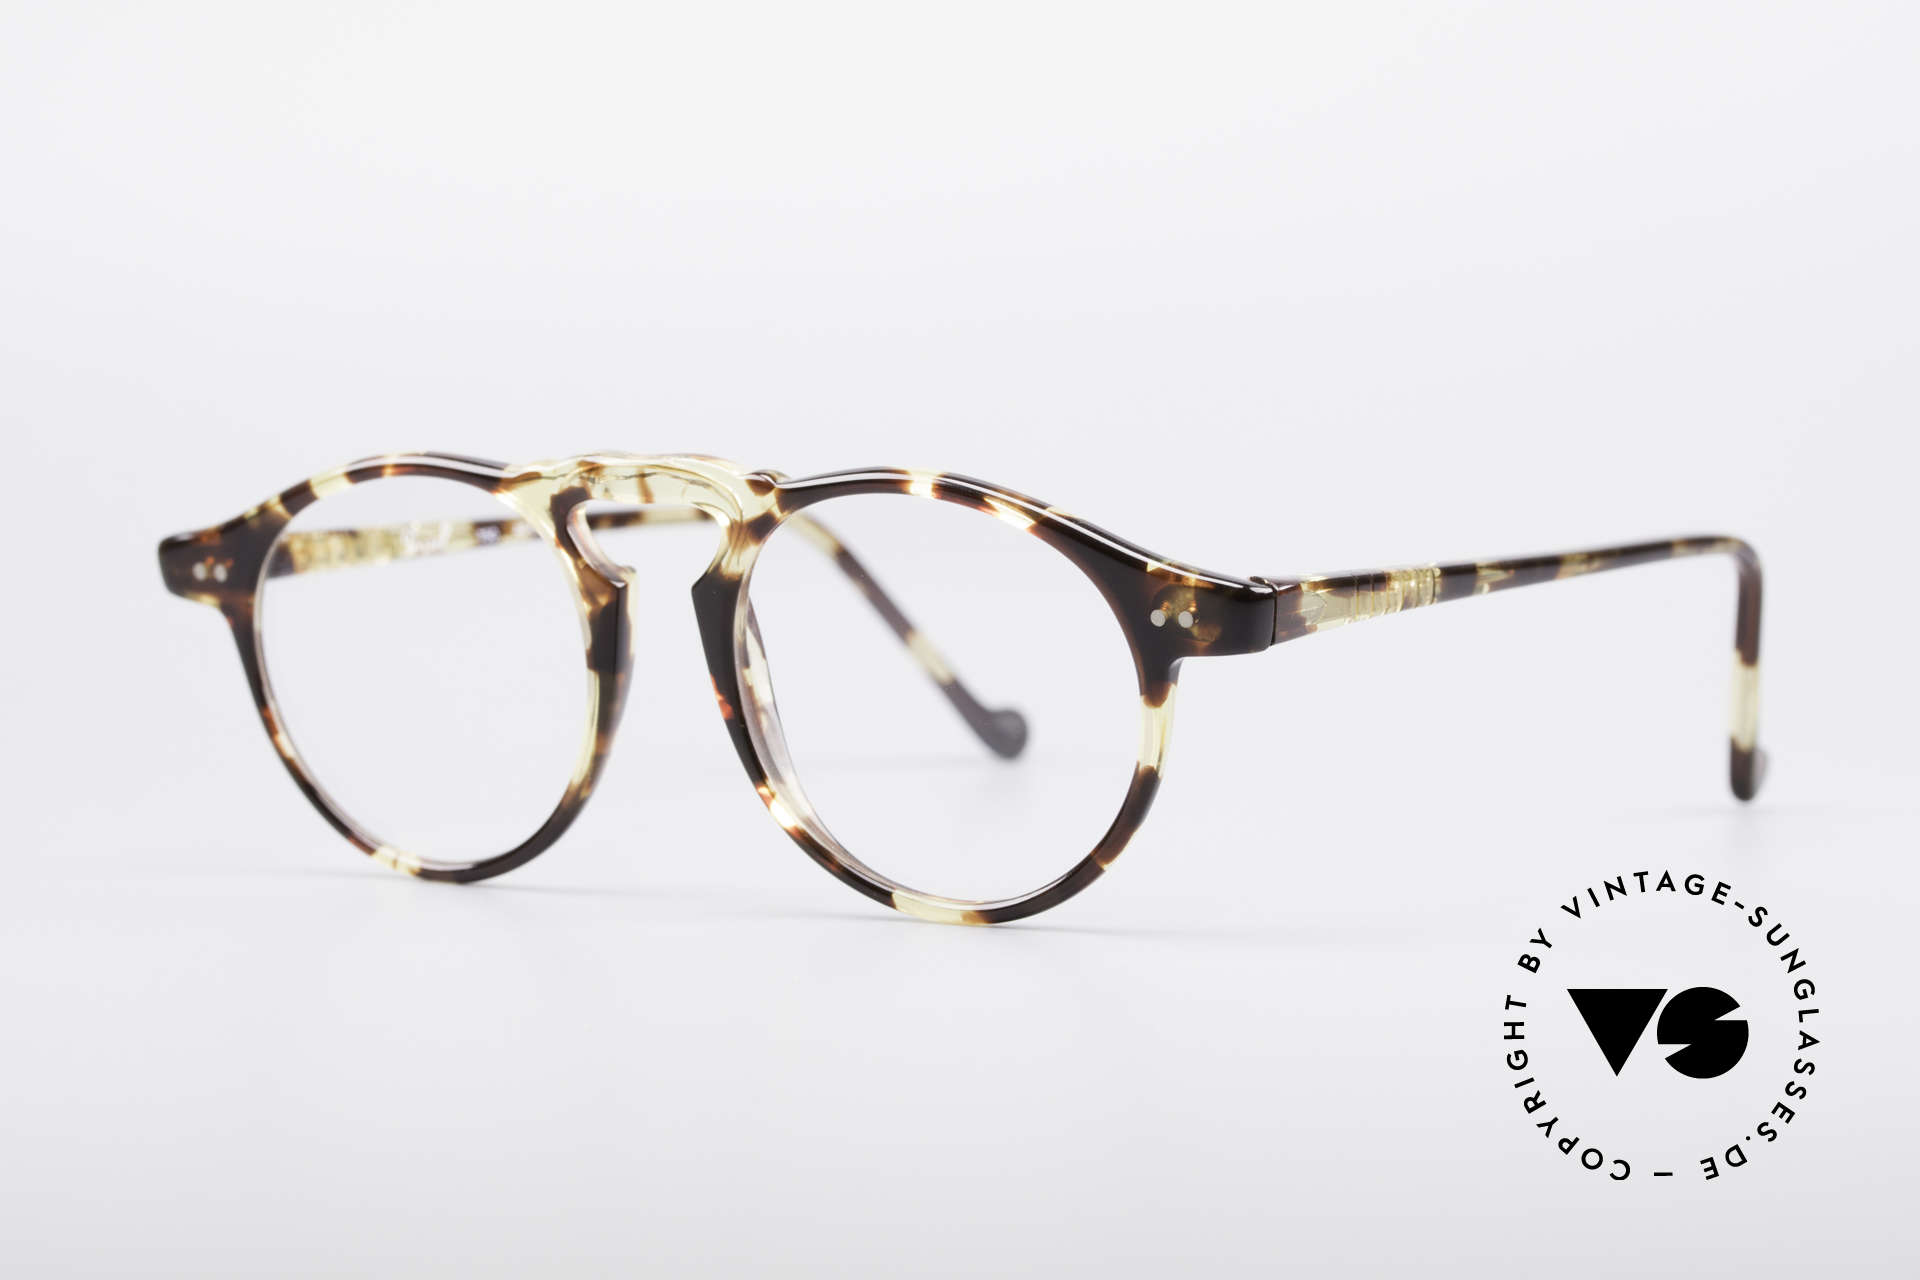 Persol 750 Ratti 80's Panto Glasses, great frame pattern (amber) and flexible temples, Made for Men and Women